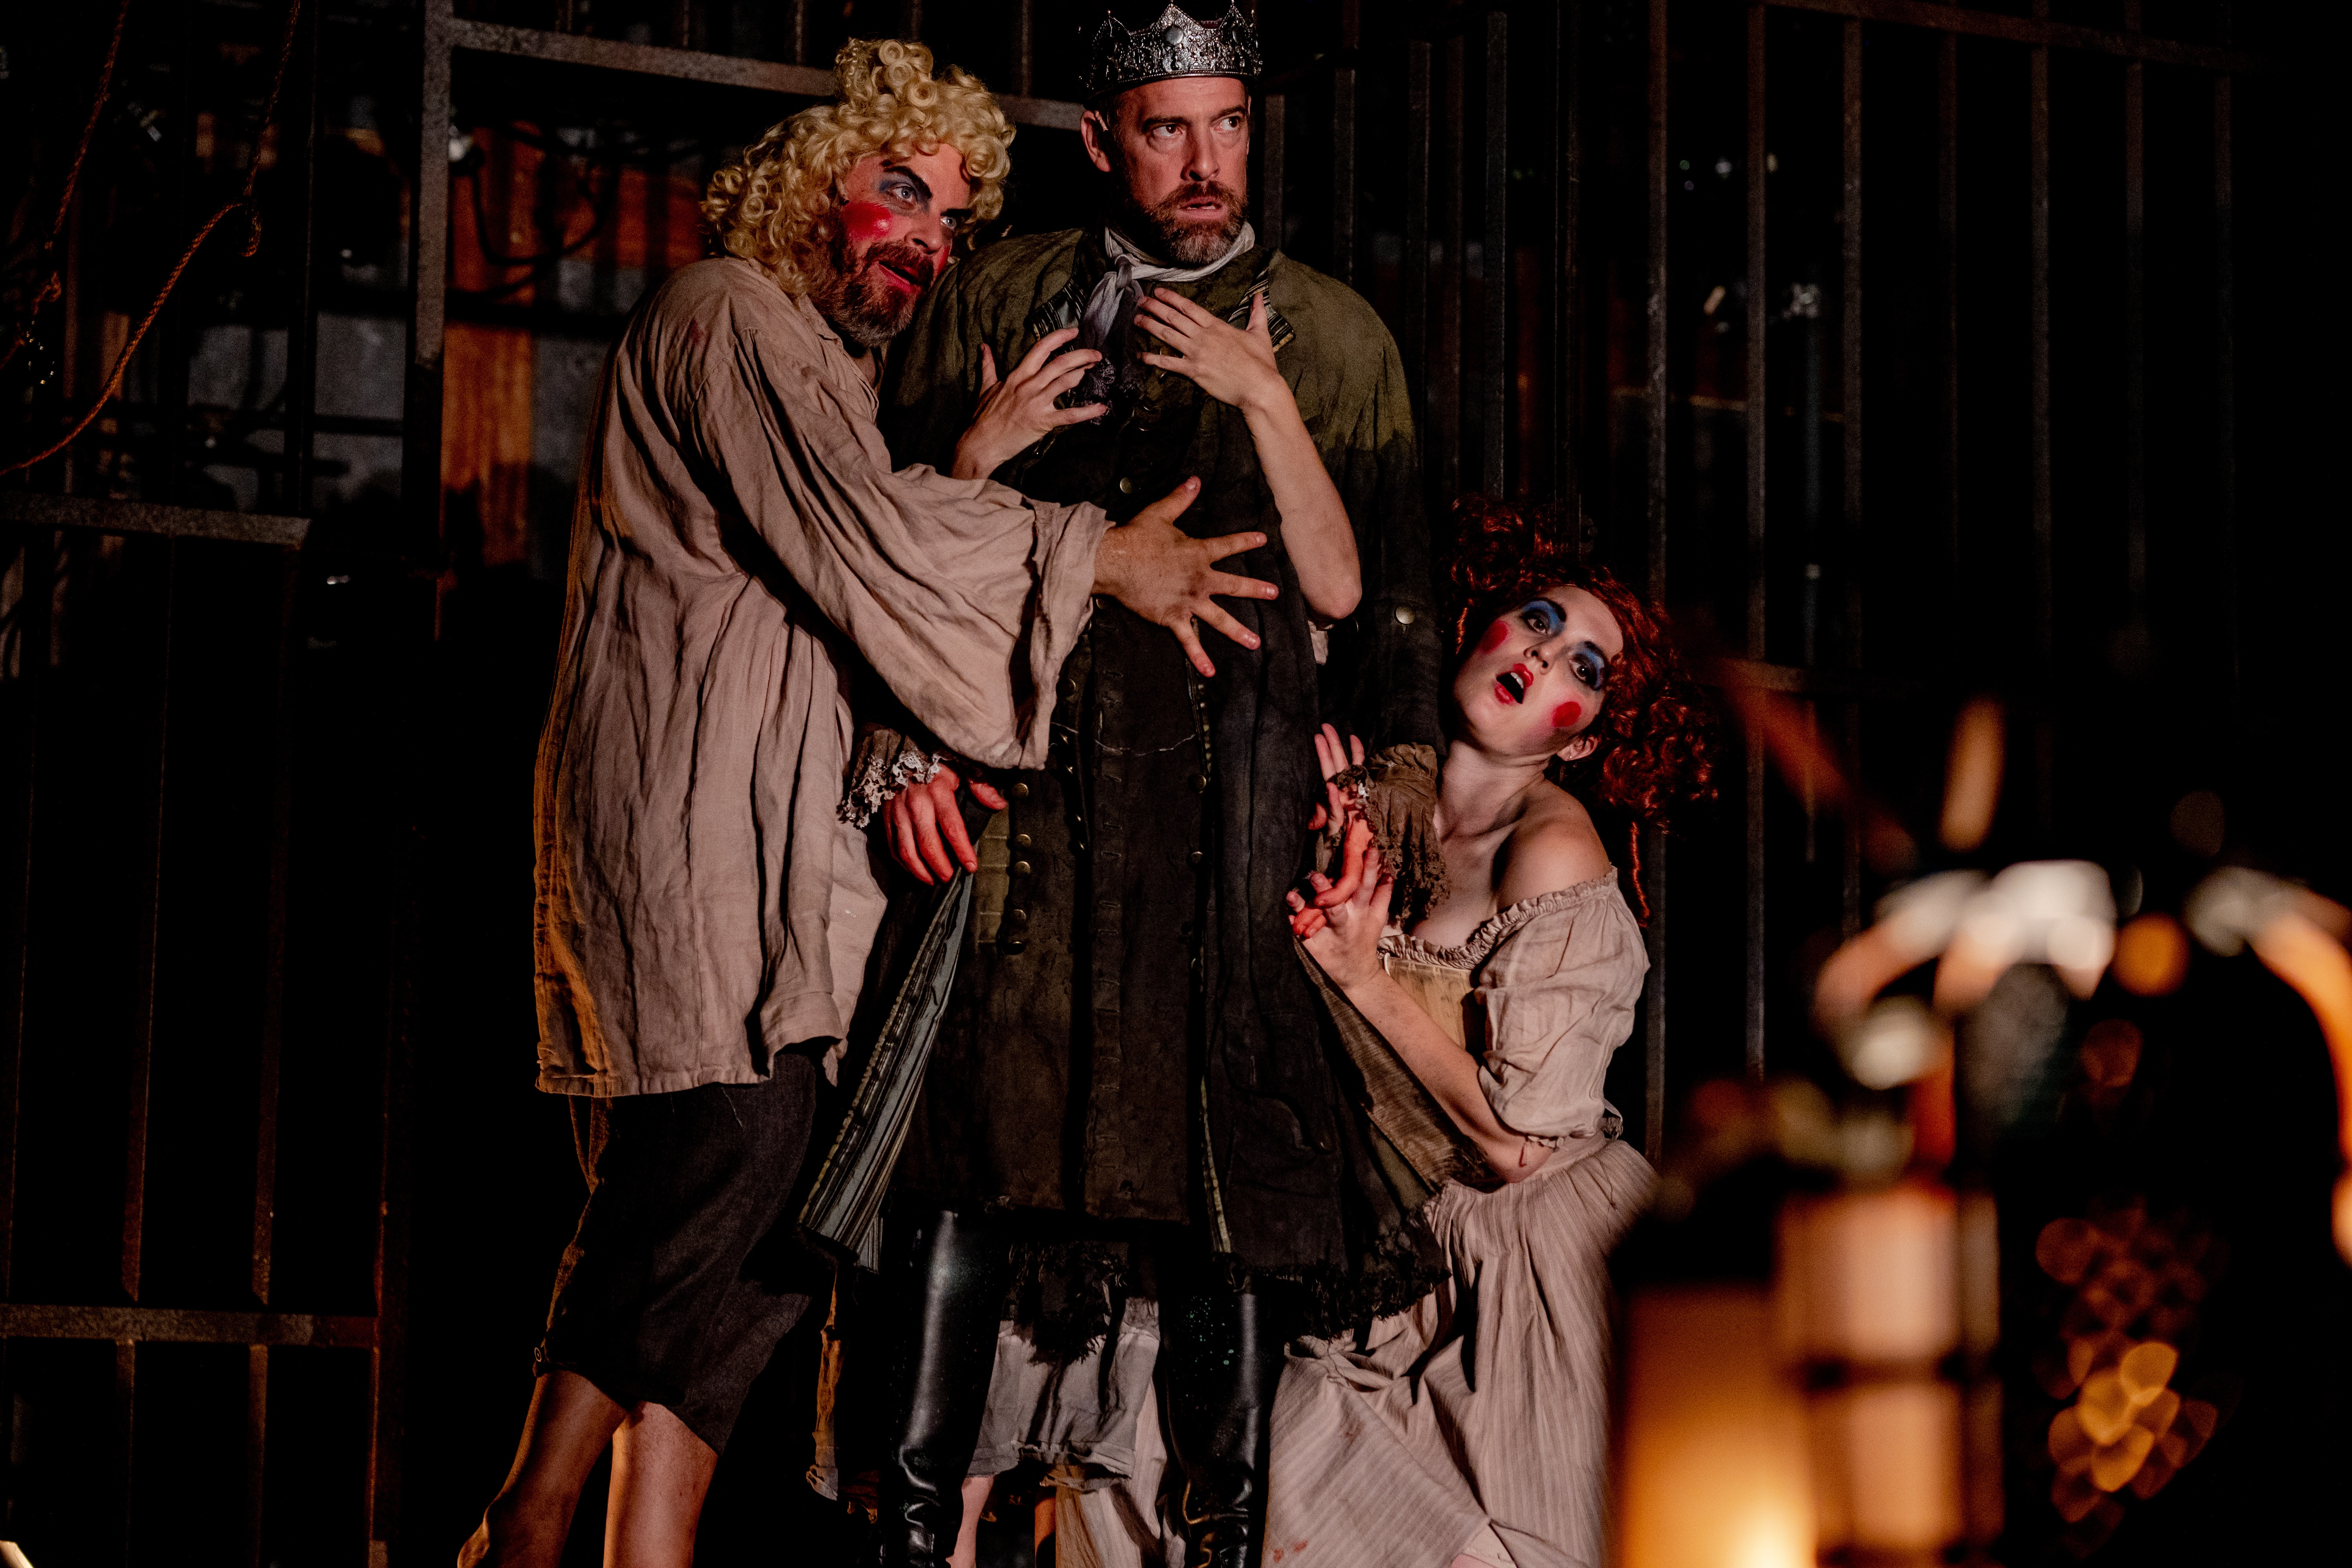 Macbeth (Ian Merrill Peakes, center) is flanked by witches (Ethan Watermeier and Rachael Montgomery) in Folger Theatre's production of Macbeth. On stage September 4–23, 2018. Photo by Brittany Diliberto.